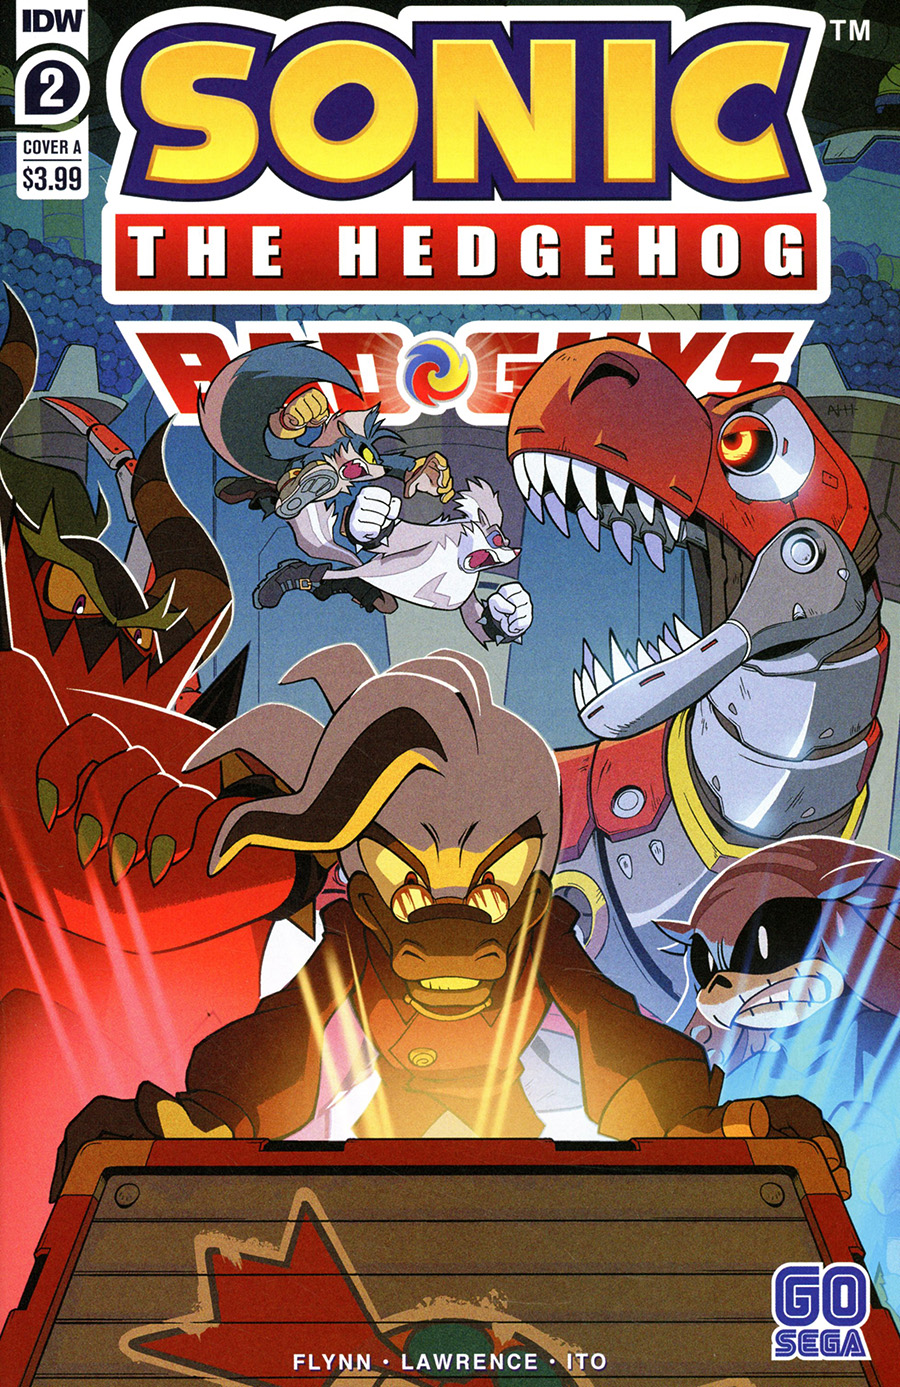 Sonic The Hedgehog Bad Guys #2 Cover A Regular Aaron Hammerstrom Cover